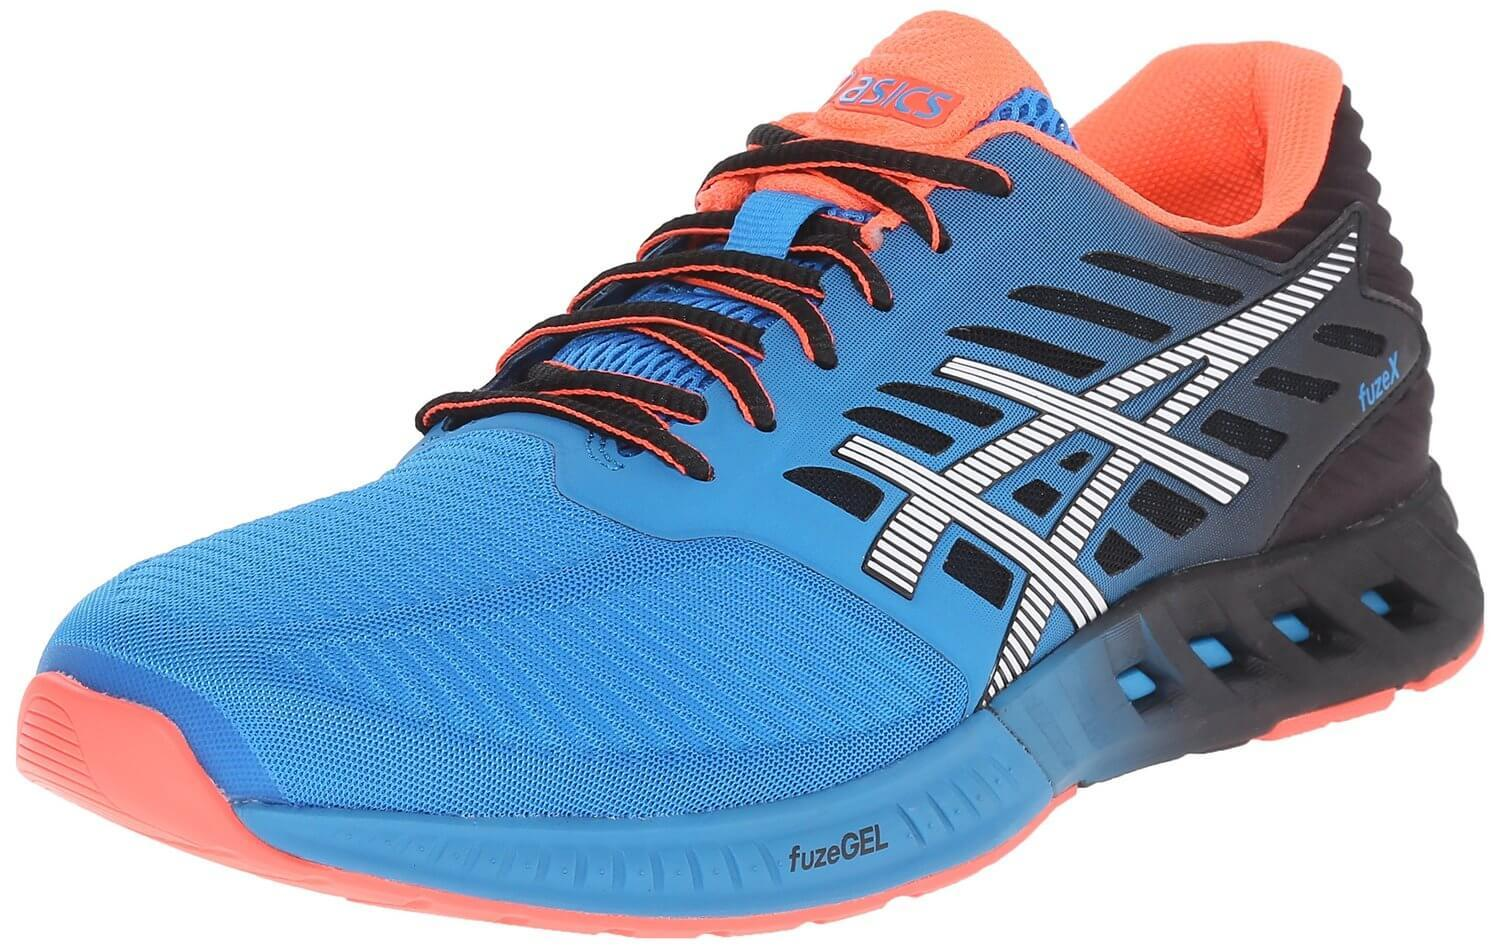 f8032ee383ec The Asics FuzeX is a fascinating new take on a cushioned running shoe.